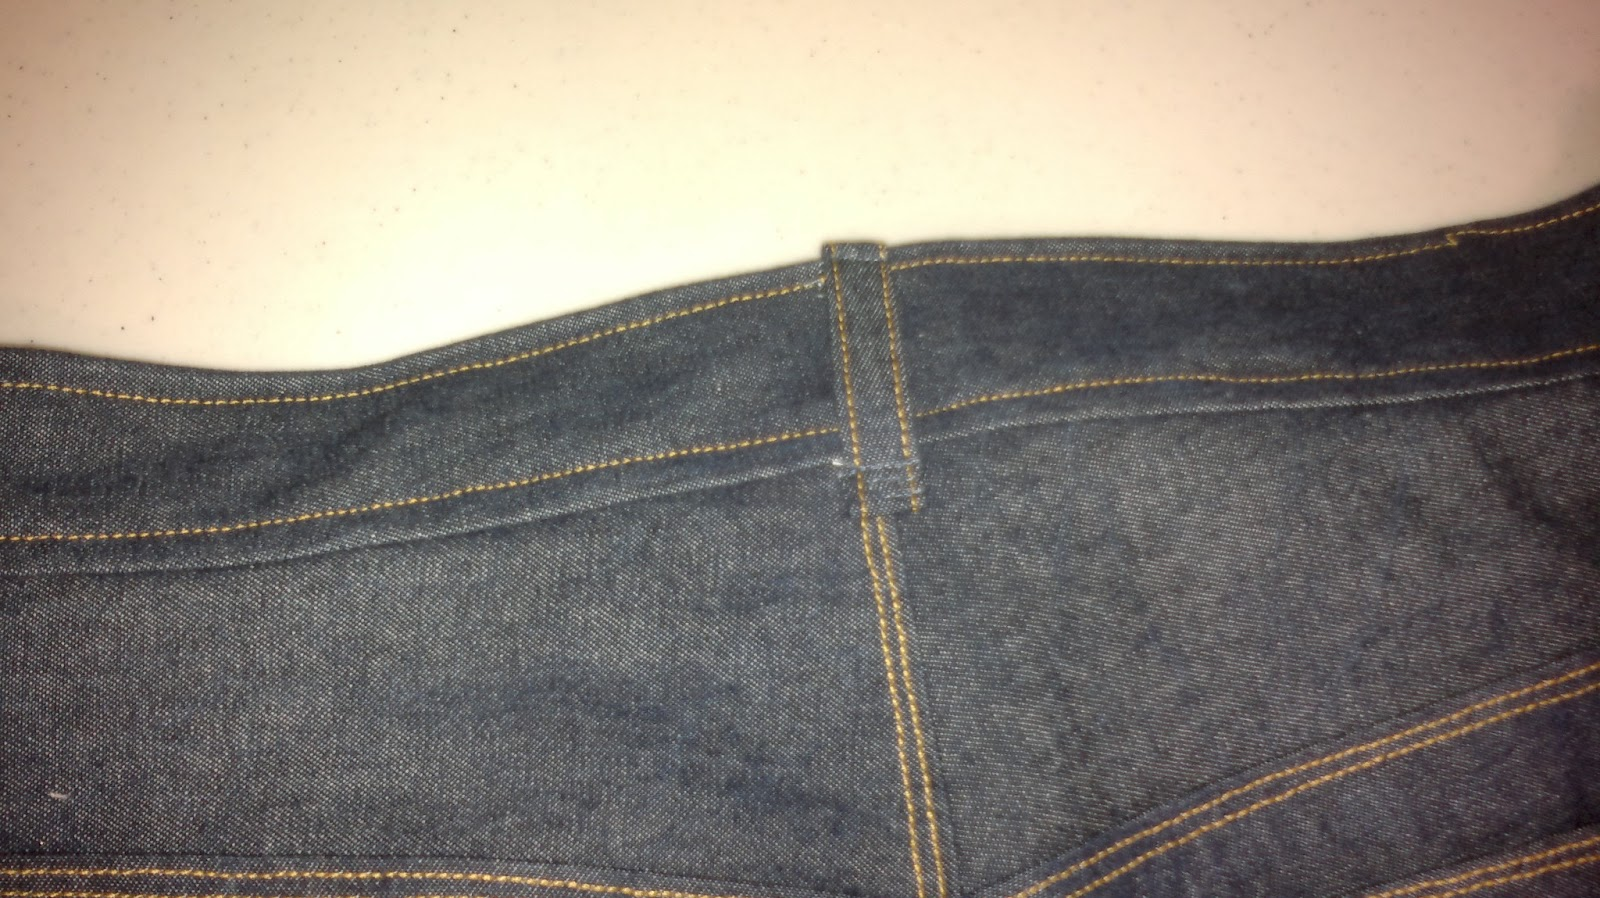 Family buzz jeans kwik sew 3504 completed but too big if you want to know how good your machine is just make a pair of jeans putting to layers of denim together is nothing try sewing the 2 layers plus the jeuxipadfo Gallery